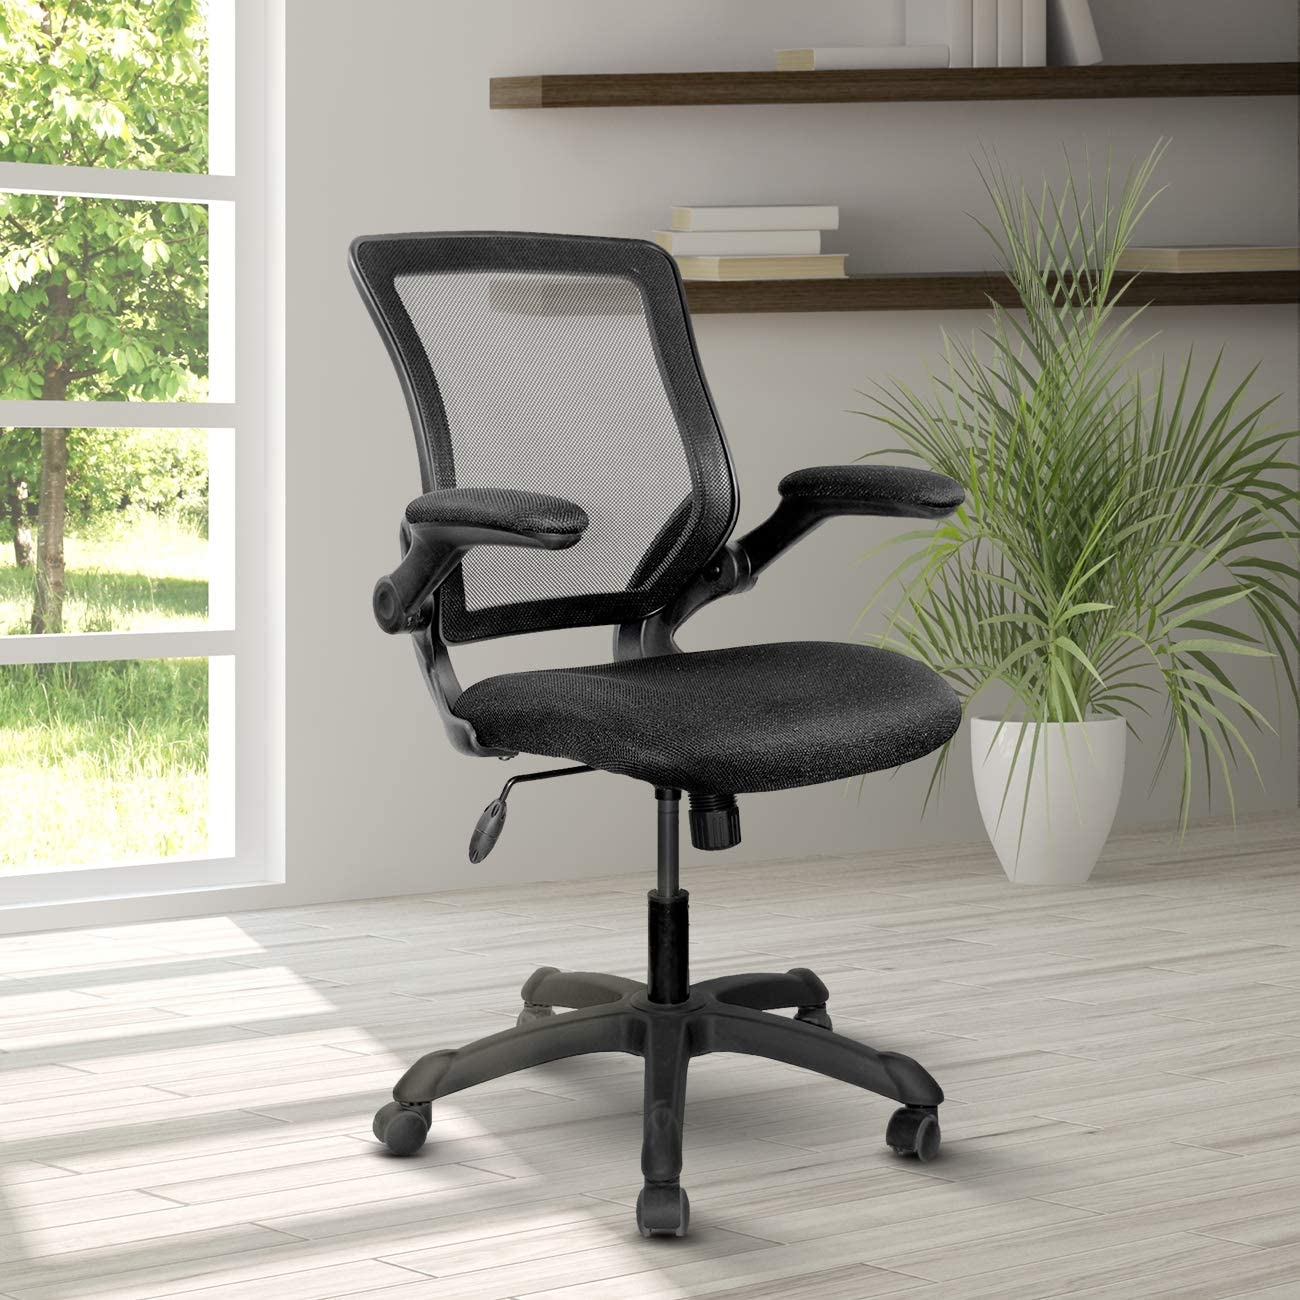 Mesh Task Office Chair with Flip Up Arms. Color: Blue black